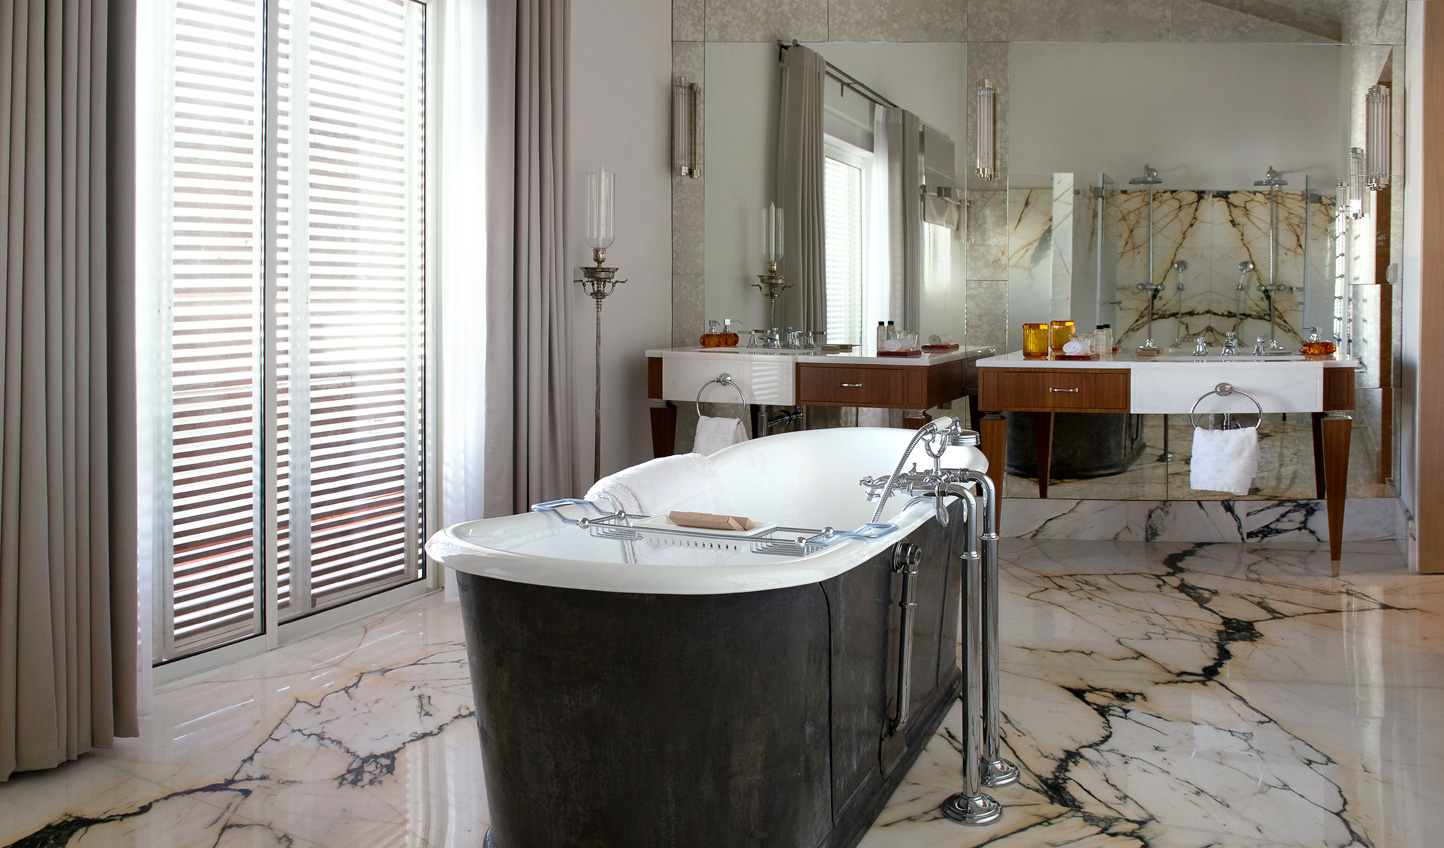 Sink into a luxurious bathtub in the Presidential Suite